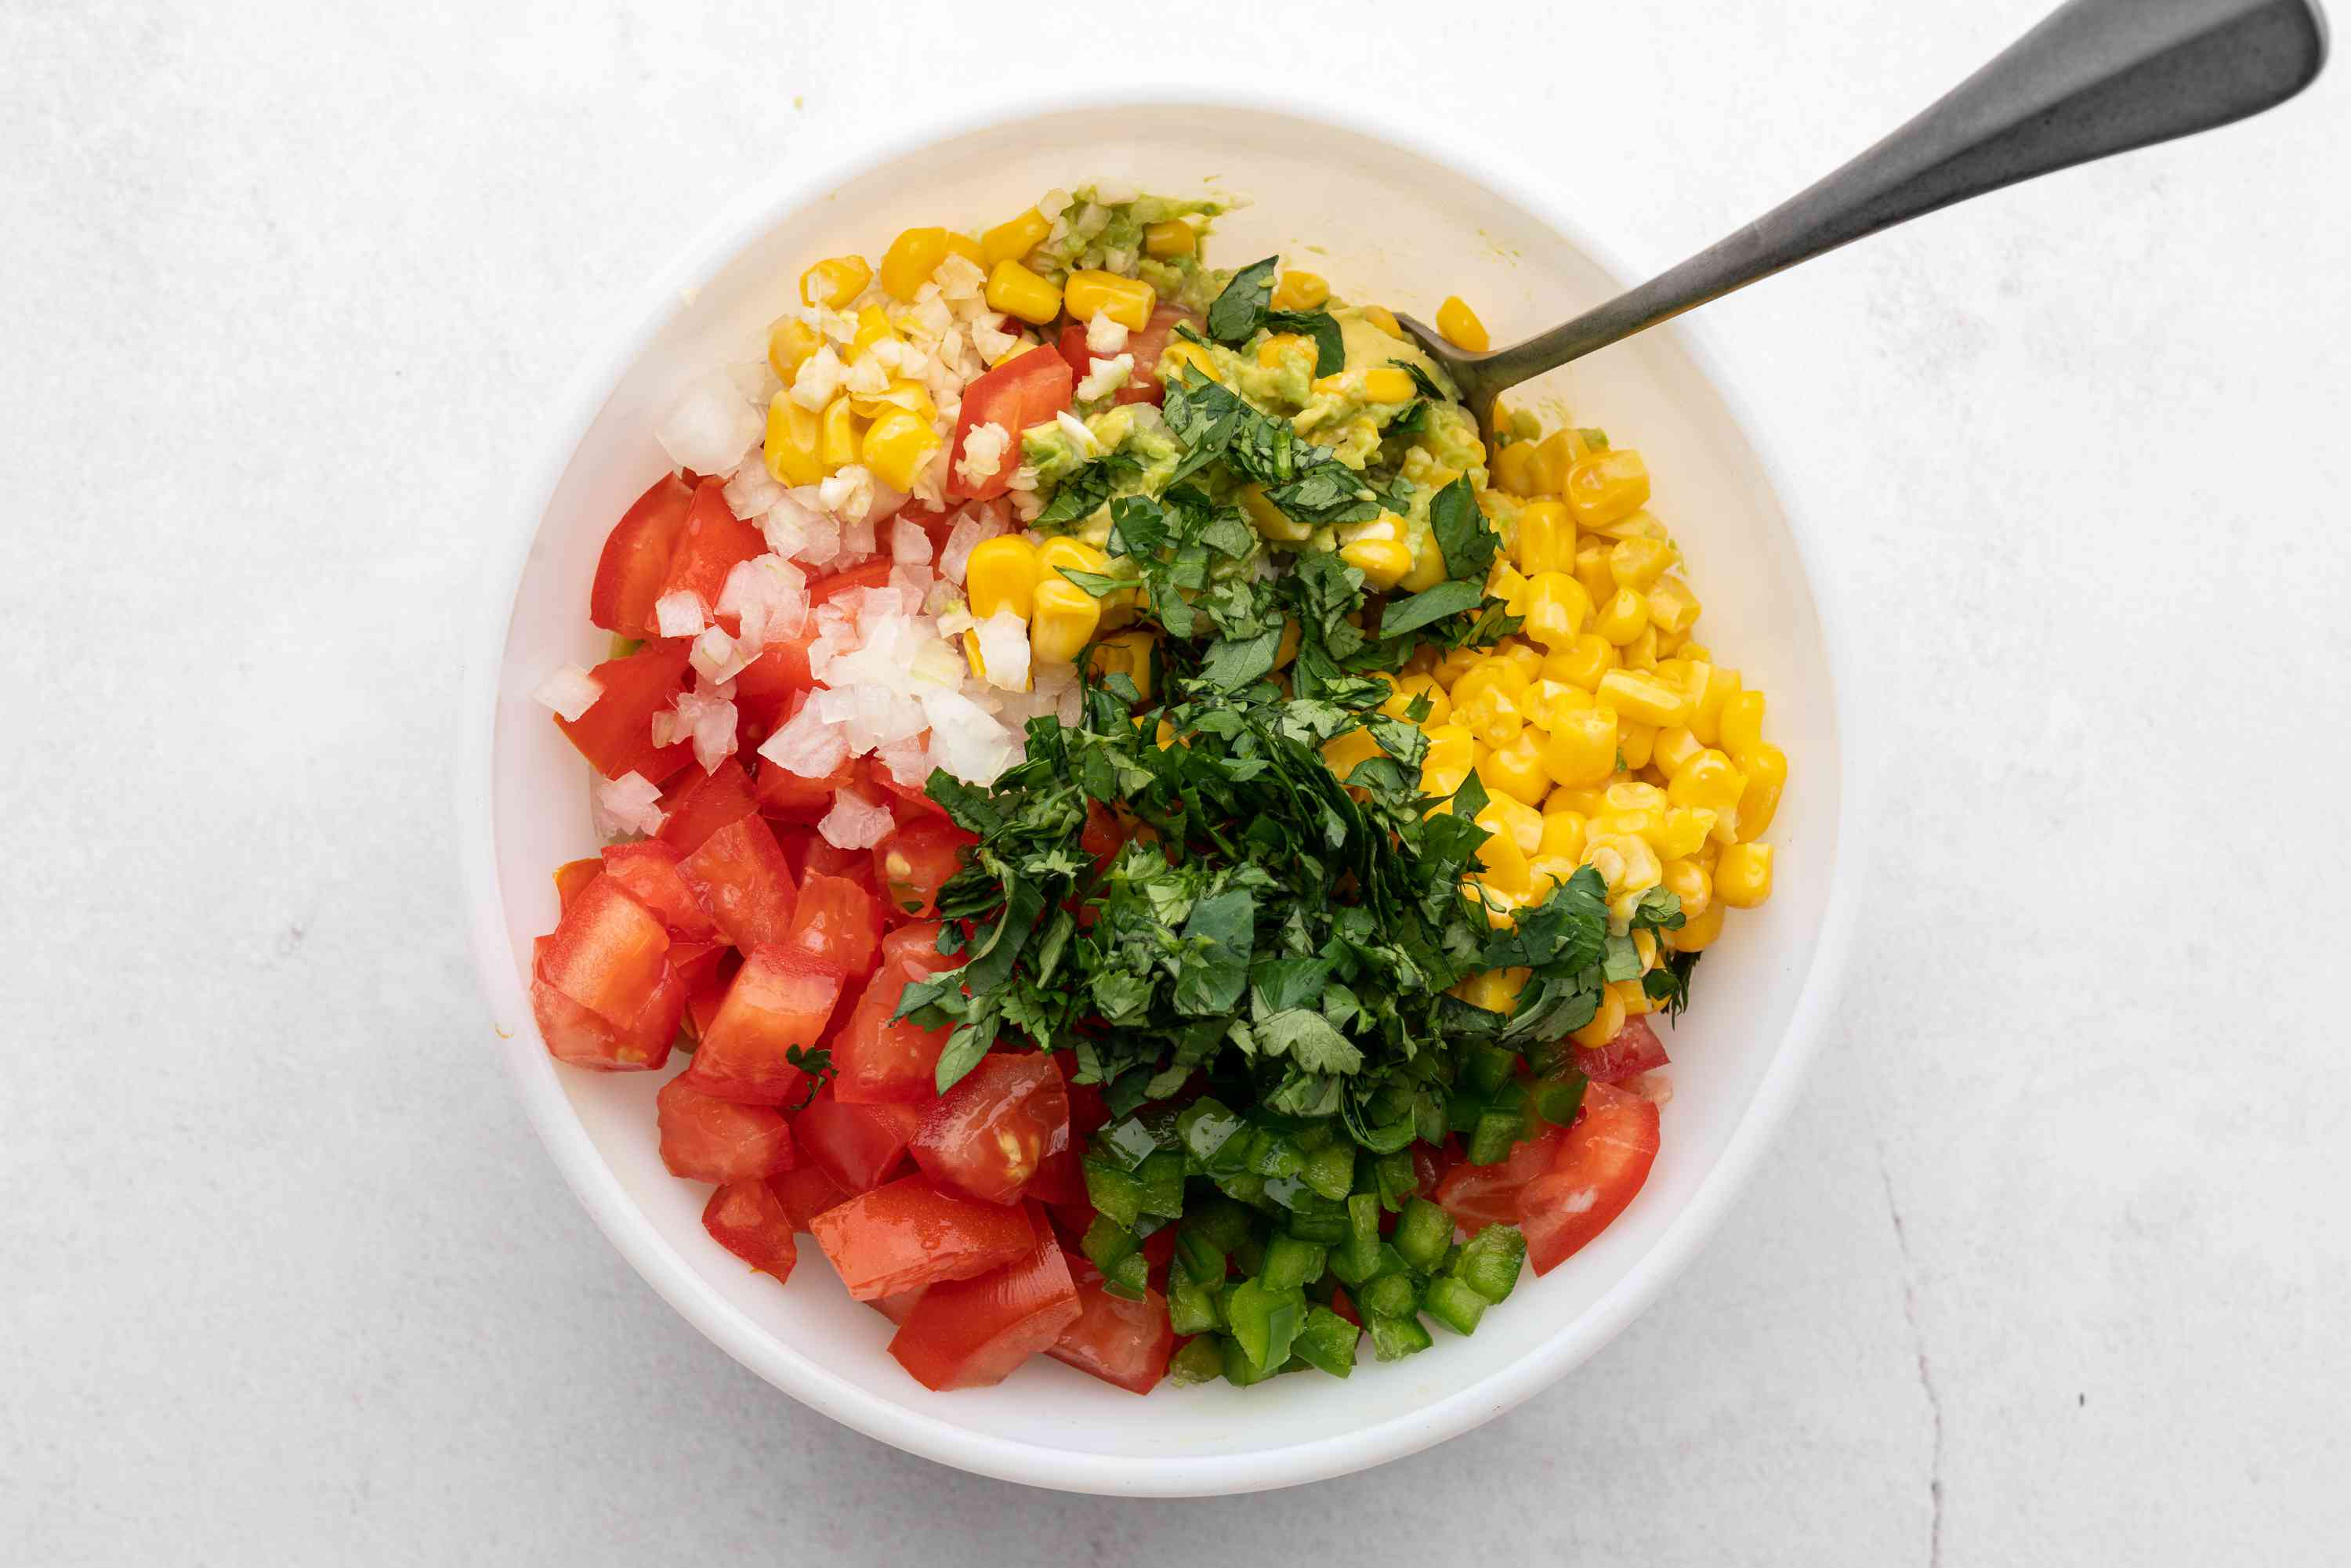 tomatoes, jalapeño, onion, garlic, cilantro, corn, and lime in a bowl with mashed avocados